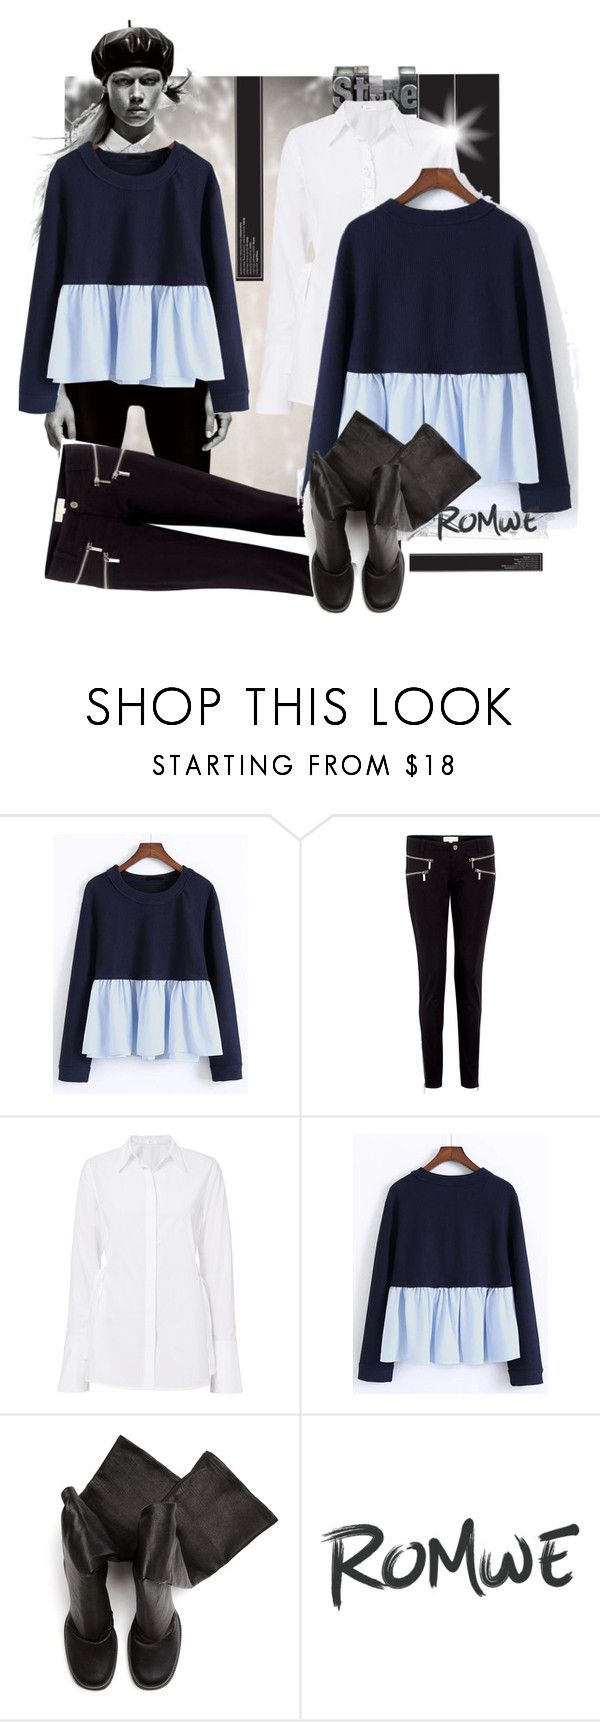 """Untitled #1842"" by hannah353 ❤ liked on Polyvore featuring Thot, MICHAEL Michael Kors and Rick Owens"